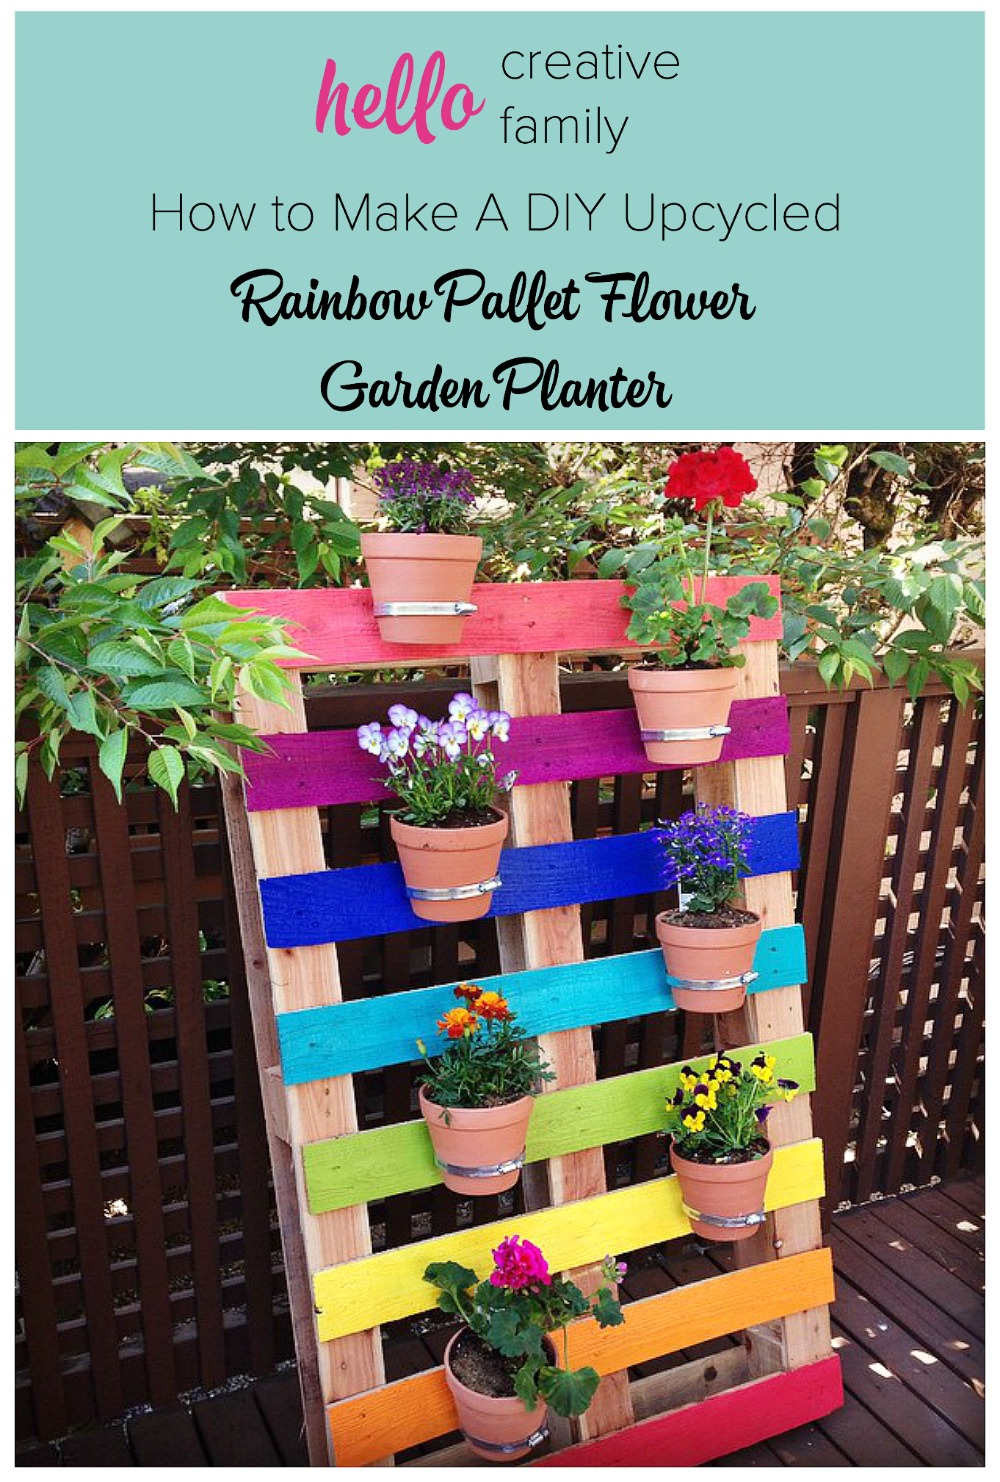 Simple Planters How To Make A Diy Upcycled Rainbow Pallet Flower Garden Planter